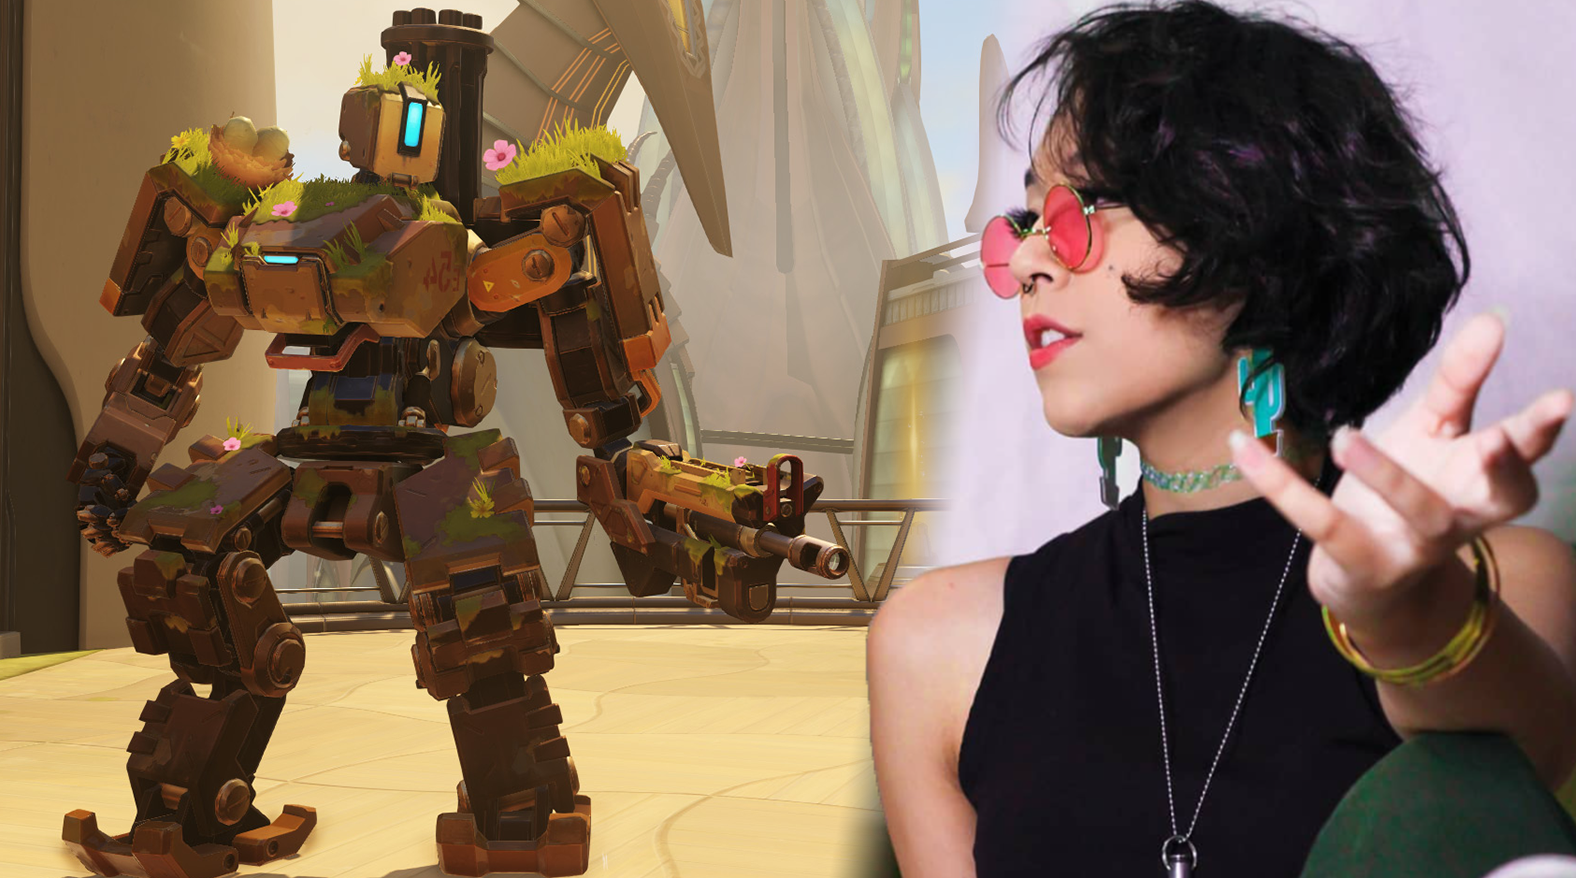 Overwatch Bastion gameplayer / cosplayer